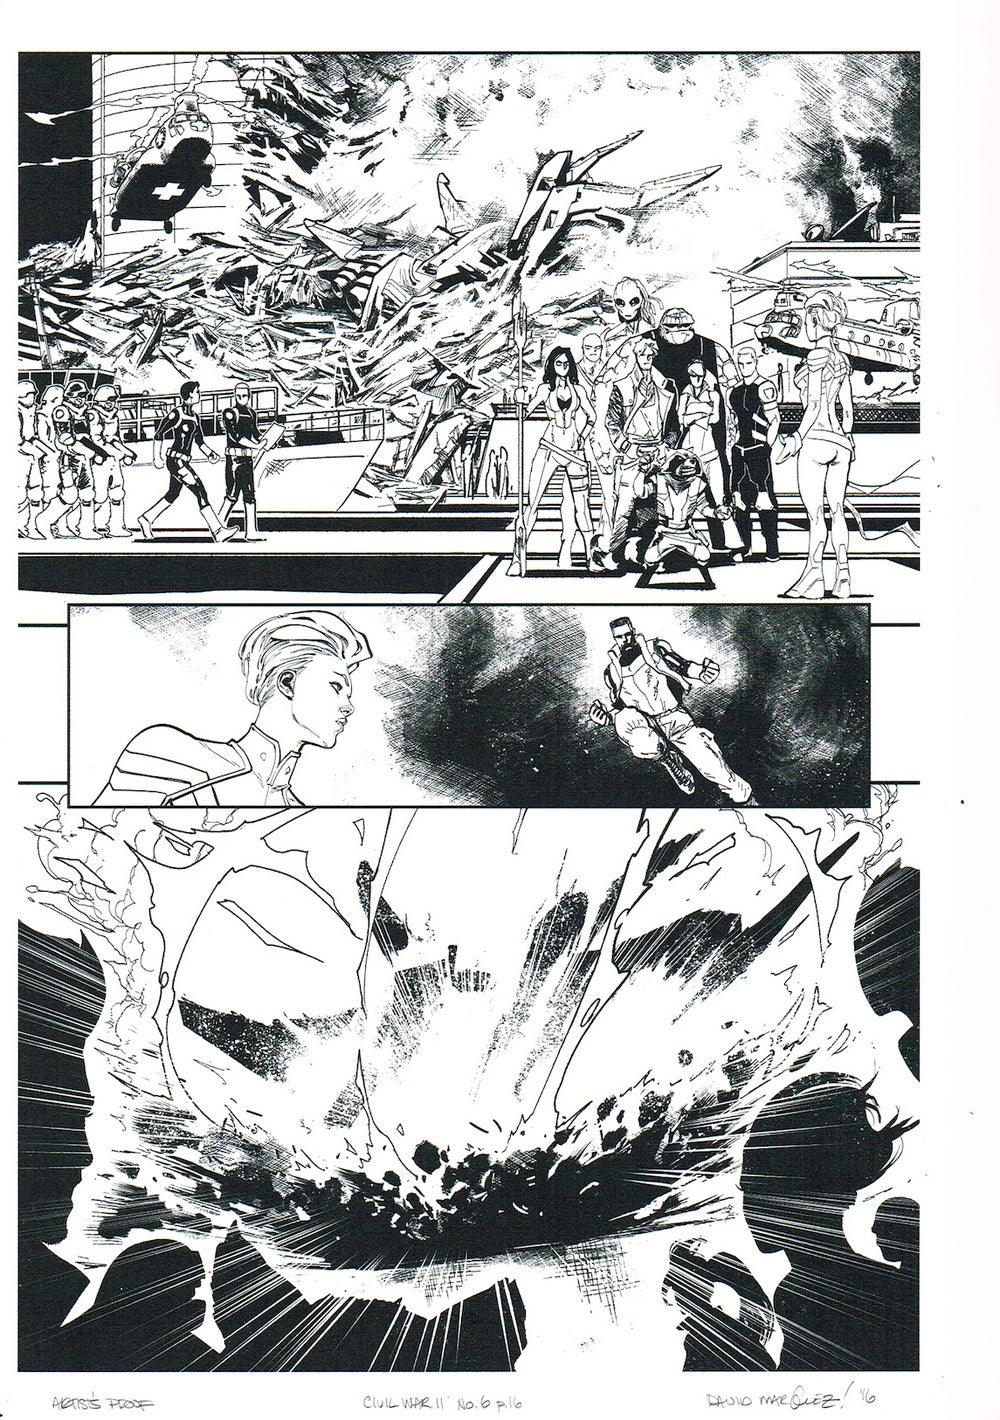 Image of CIVIL WAR II #6, p.16 ARTIST'S PROOF